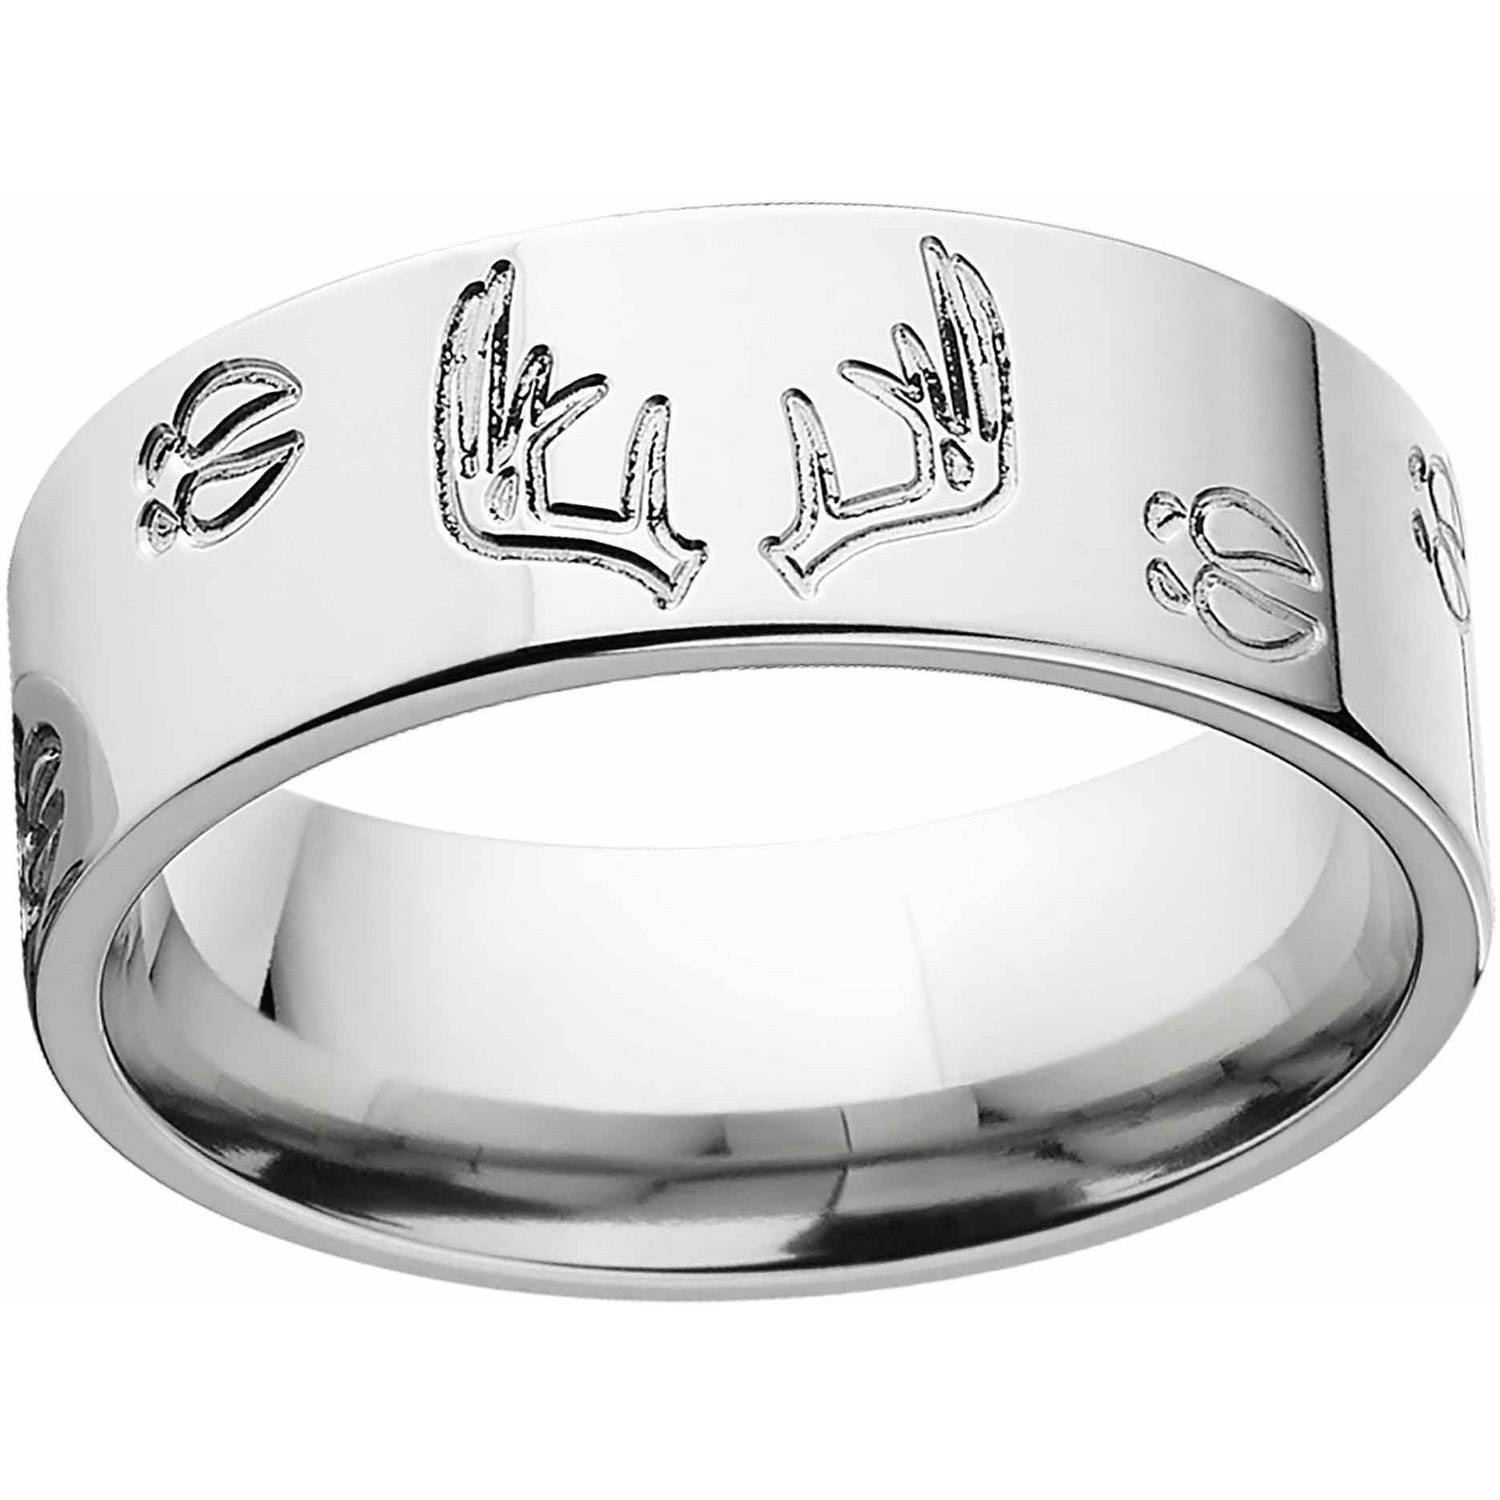 Men's Deer Track And Rack Durable 8mm Stainless Steel Wedding Band Throughout Durable Wedding Bands For Men (View 10 of 15)